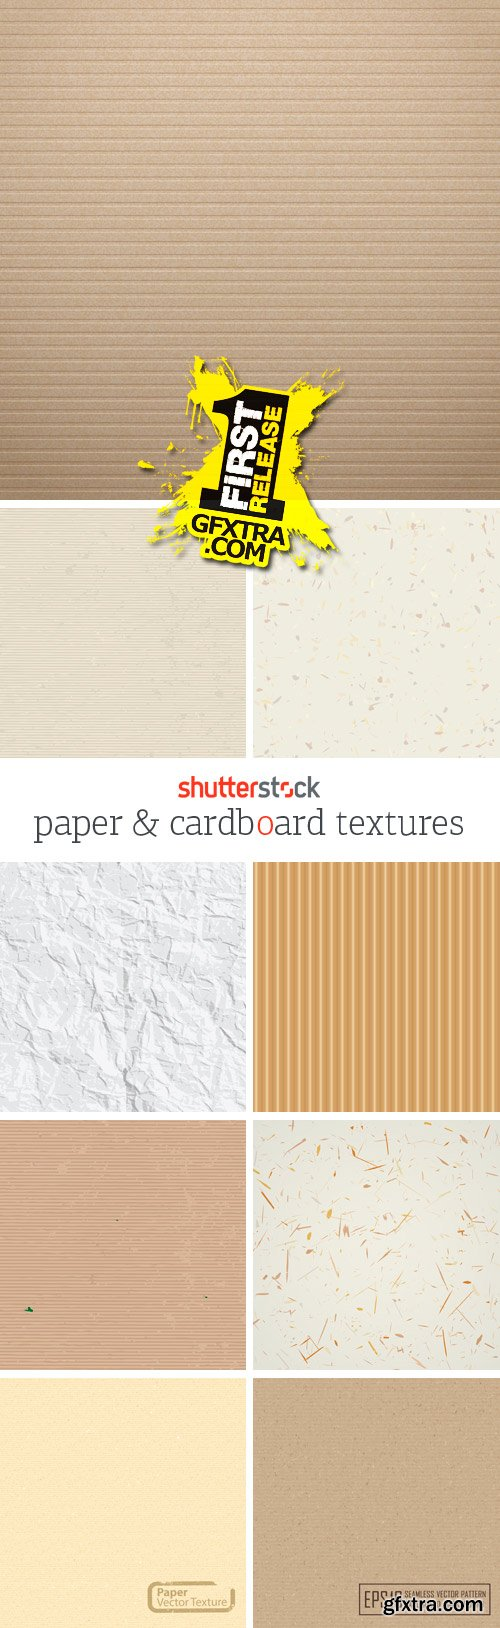 Amazing SS - Paper & Cardboard Textures, 25xEPS